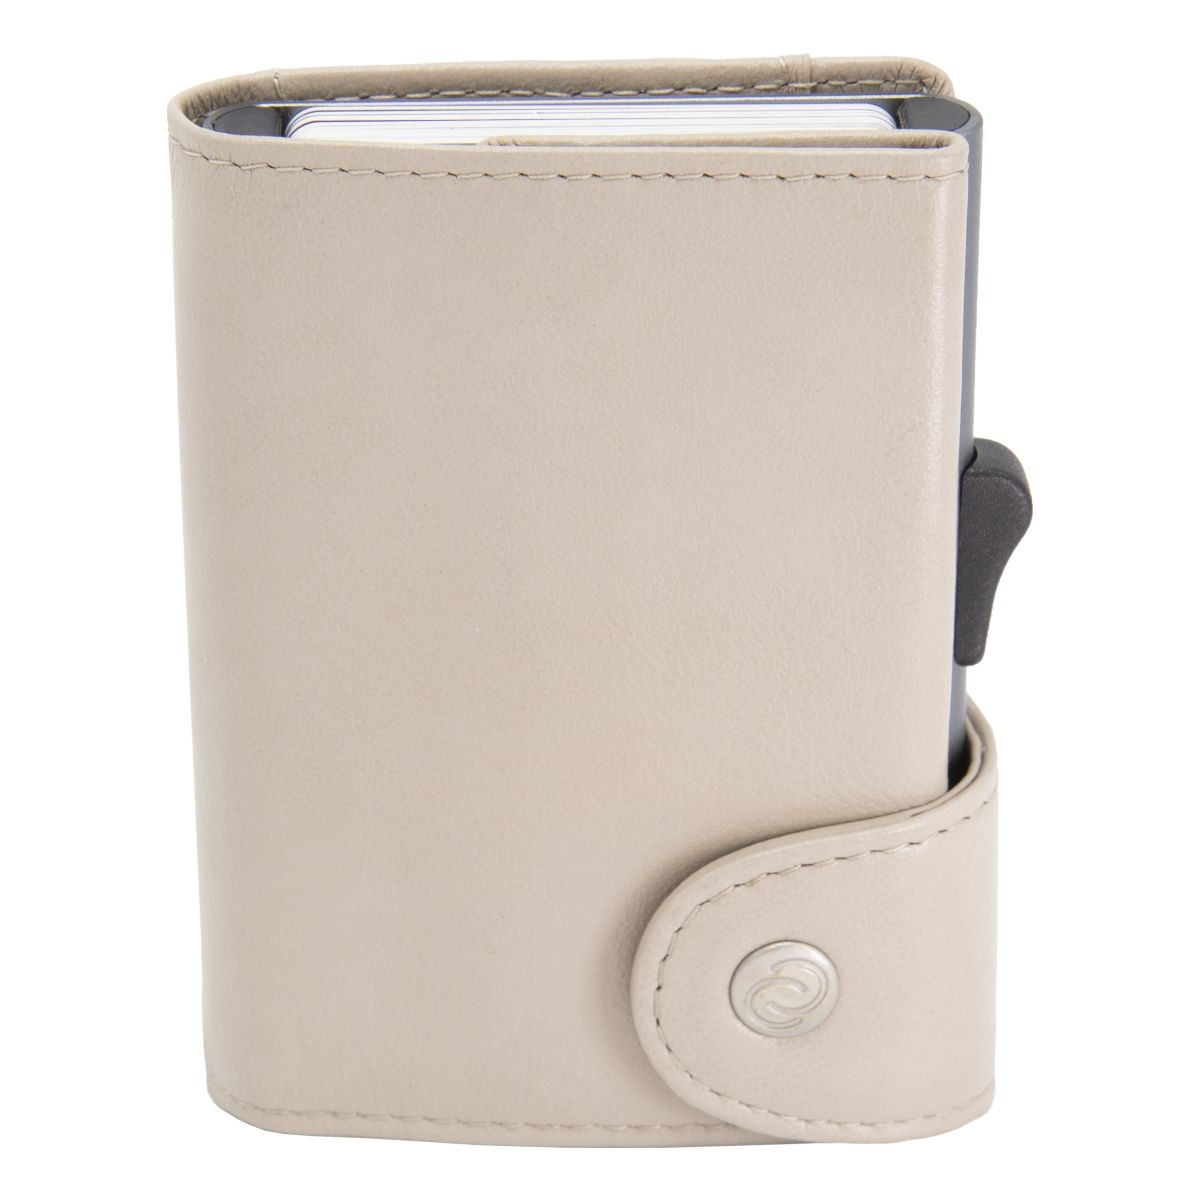 C-Secure XL Aluminum Wallet with Genuine Leather - Off White